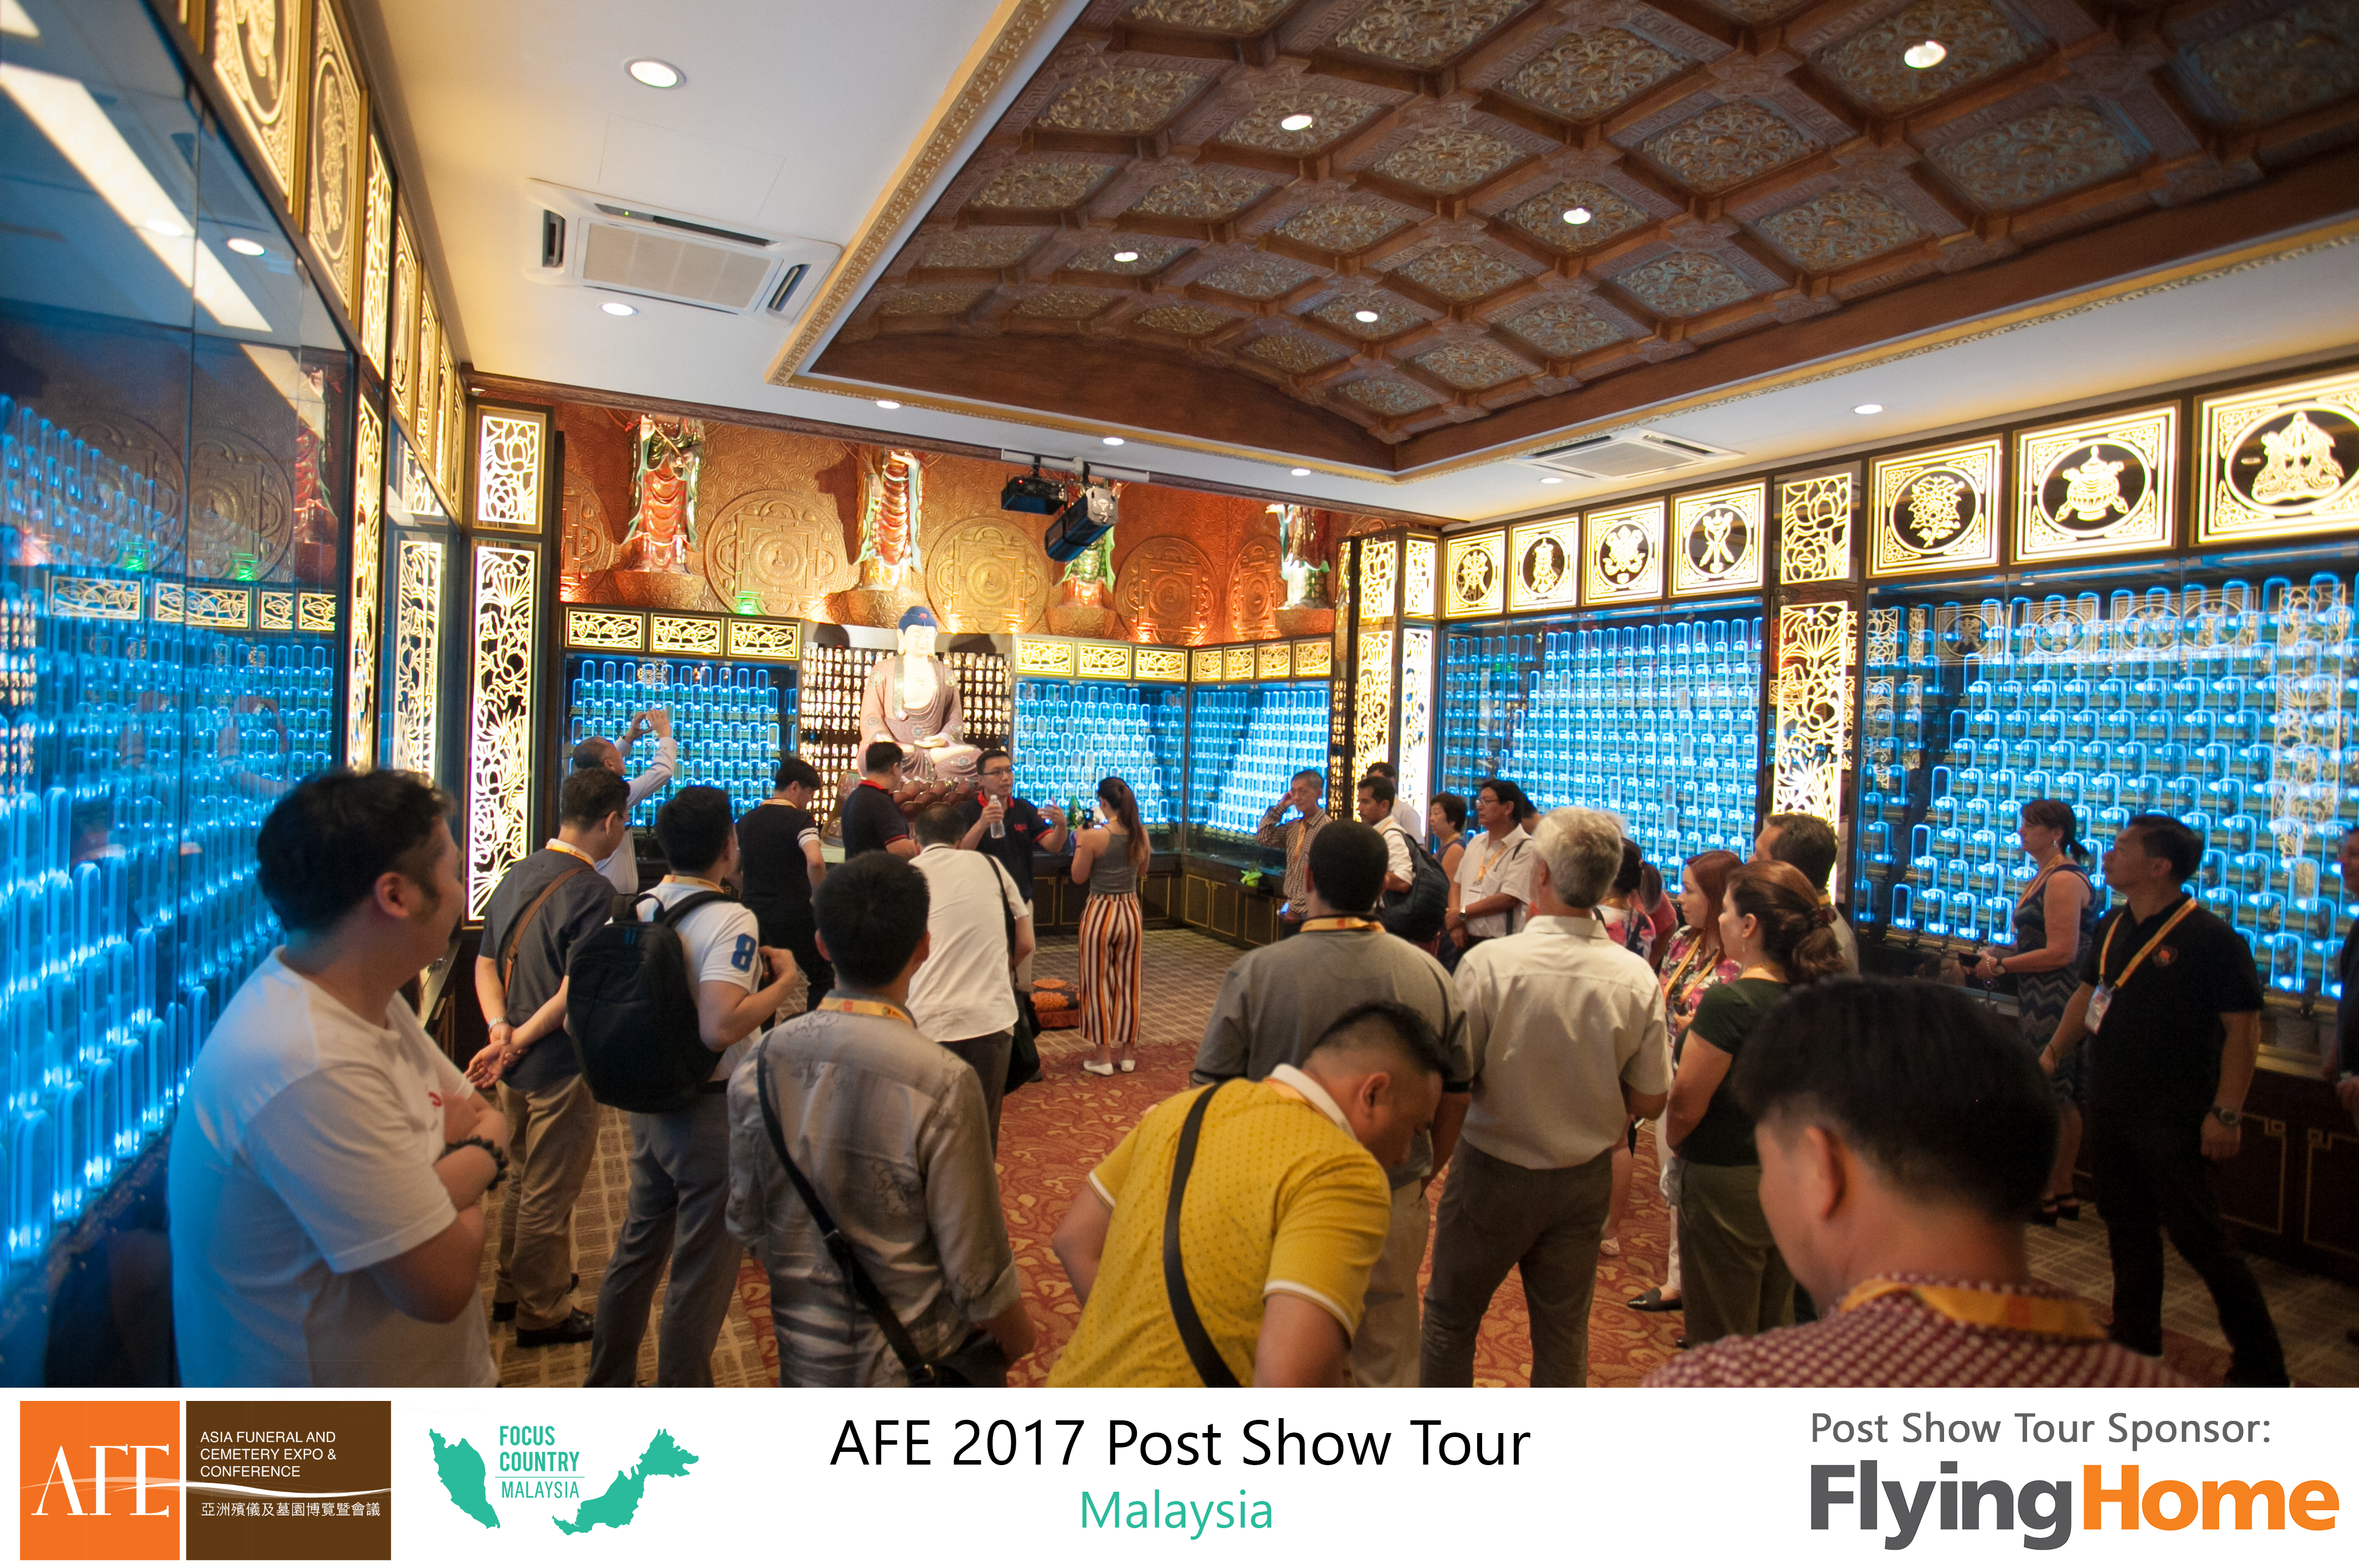 AFE Post Show Tour 2017 Day 2 - 22